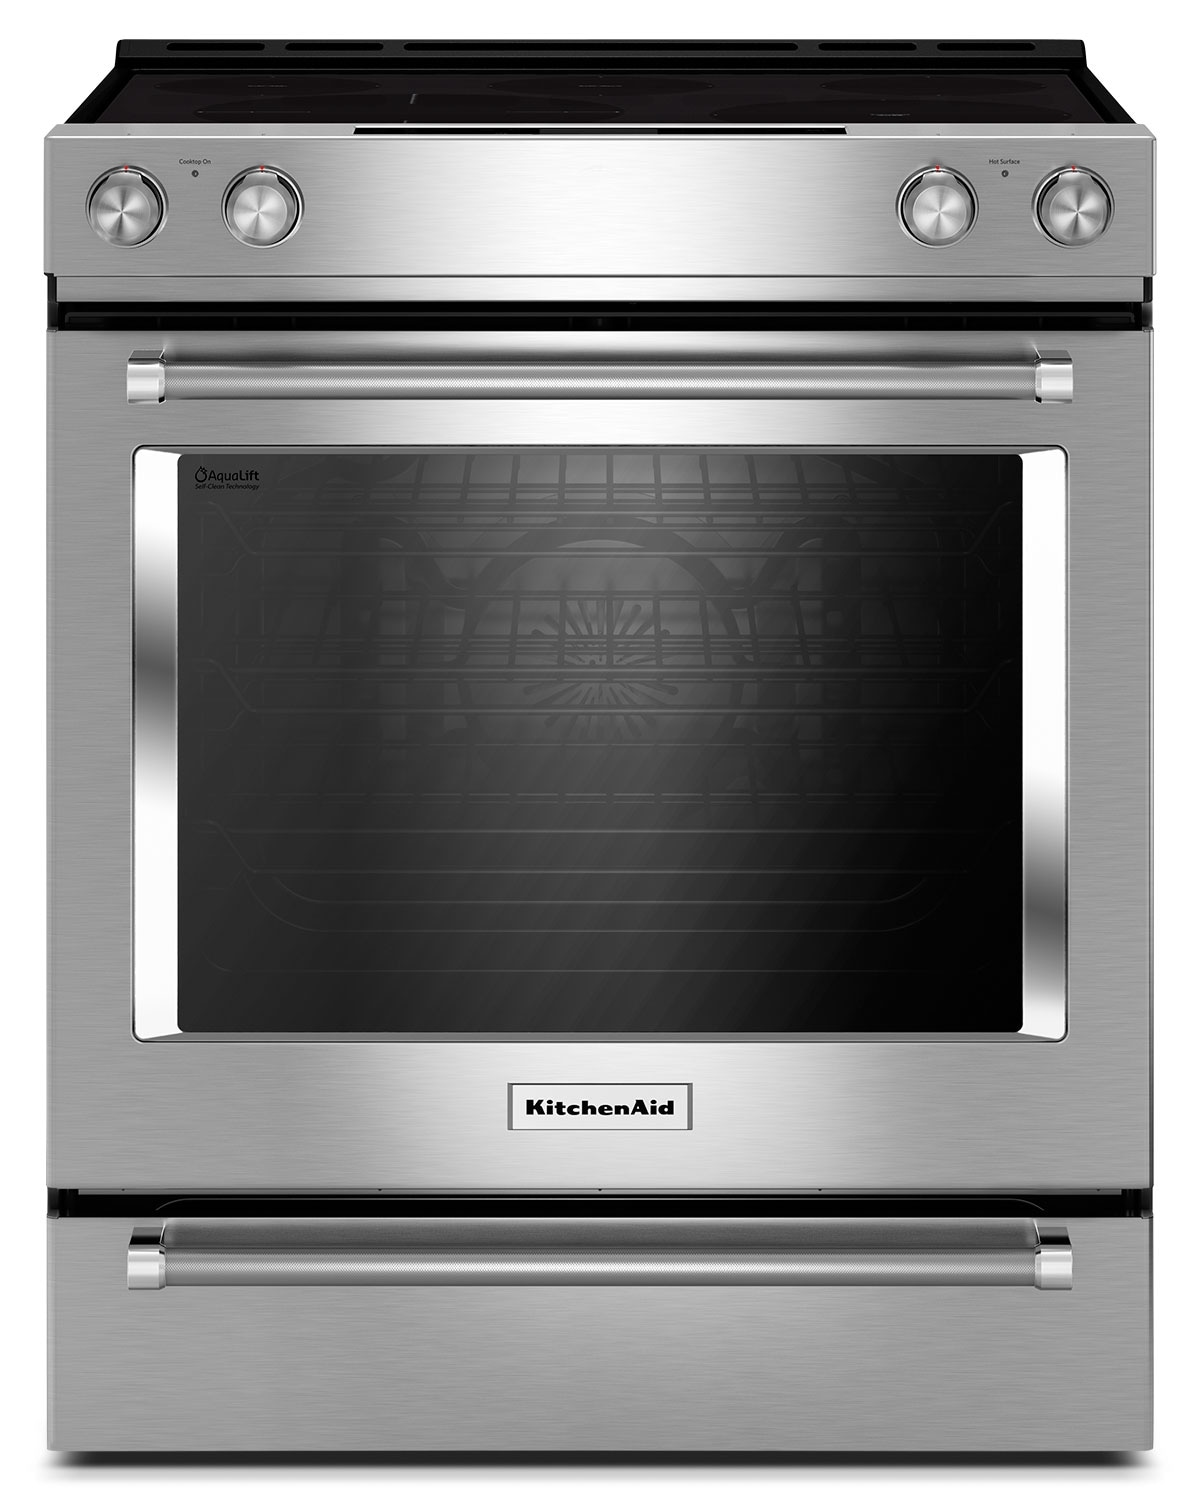 KitchenAid 6.4 Cu. Ft. Slide-In Electric Convection Range - Stainless Steel